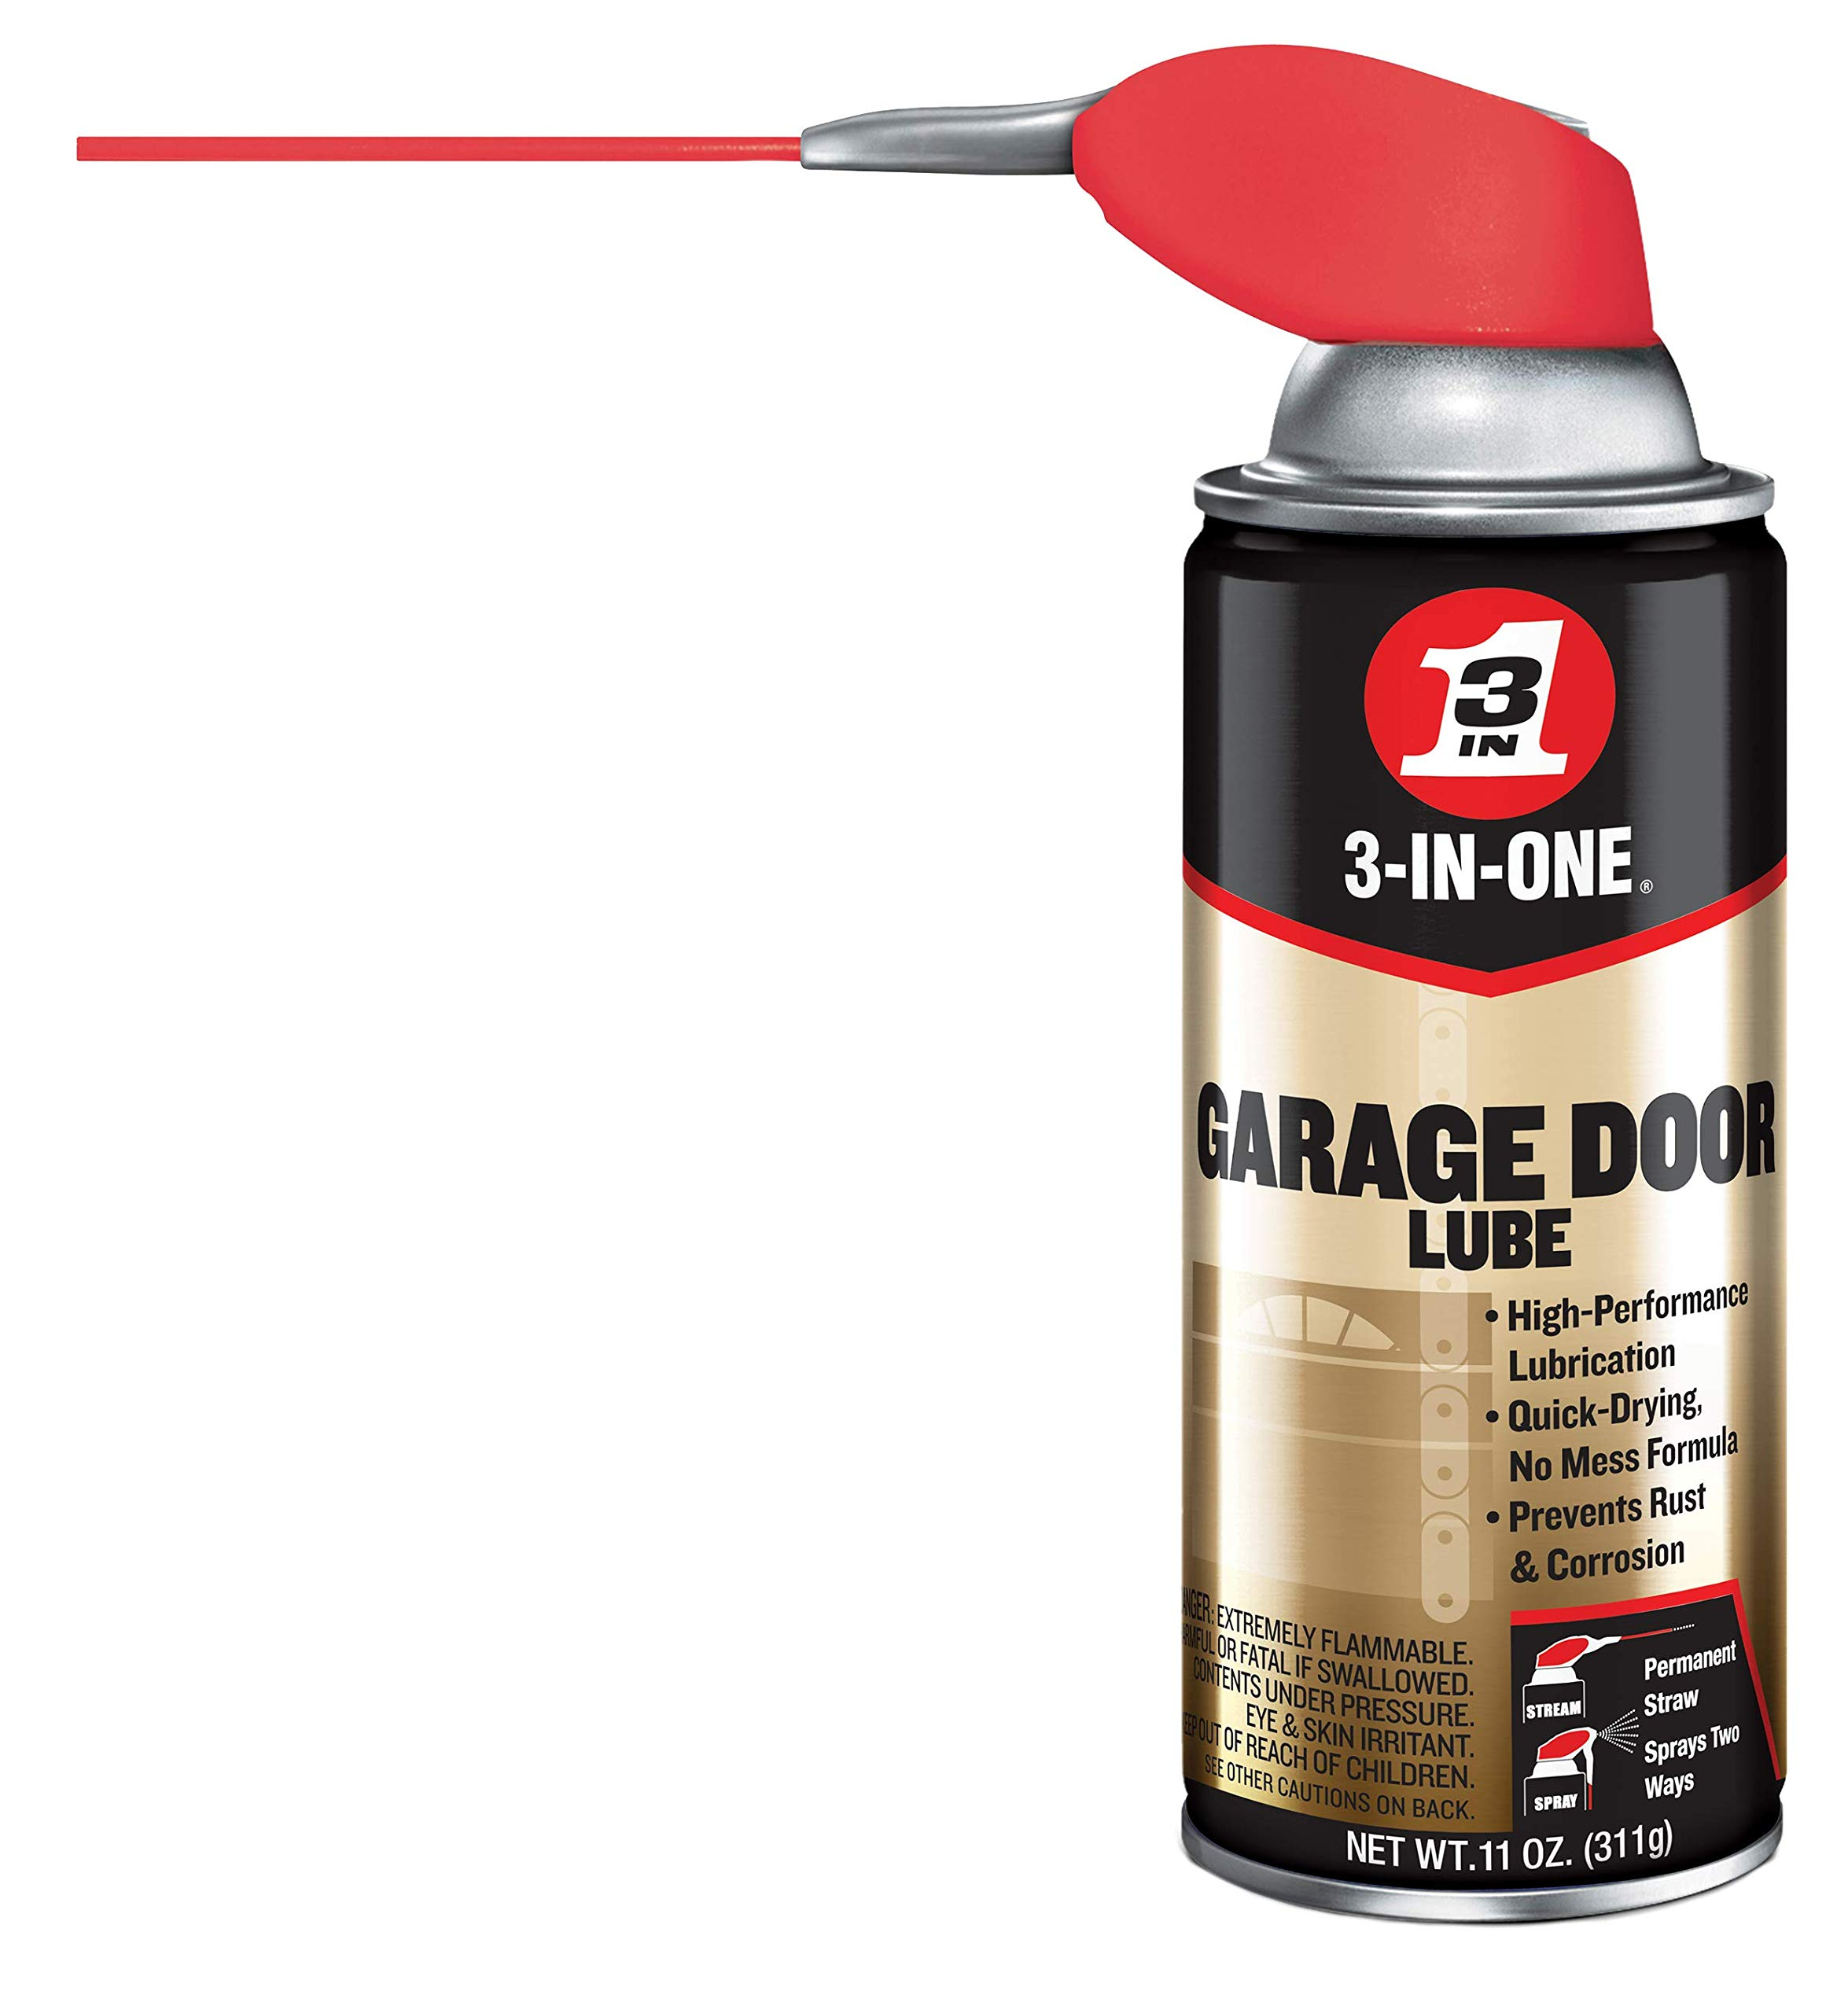 WD-40 3-in-one Professional Garage Door Lubricant, 11 Oz Aerosol Can - WDC100581 by WD-40